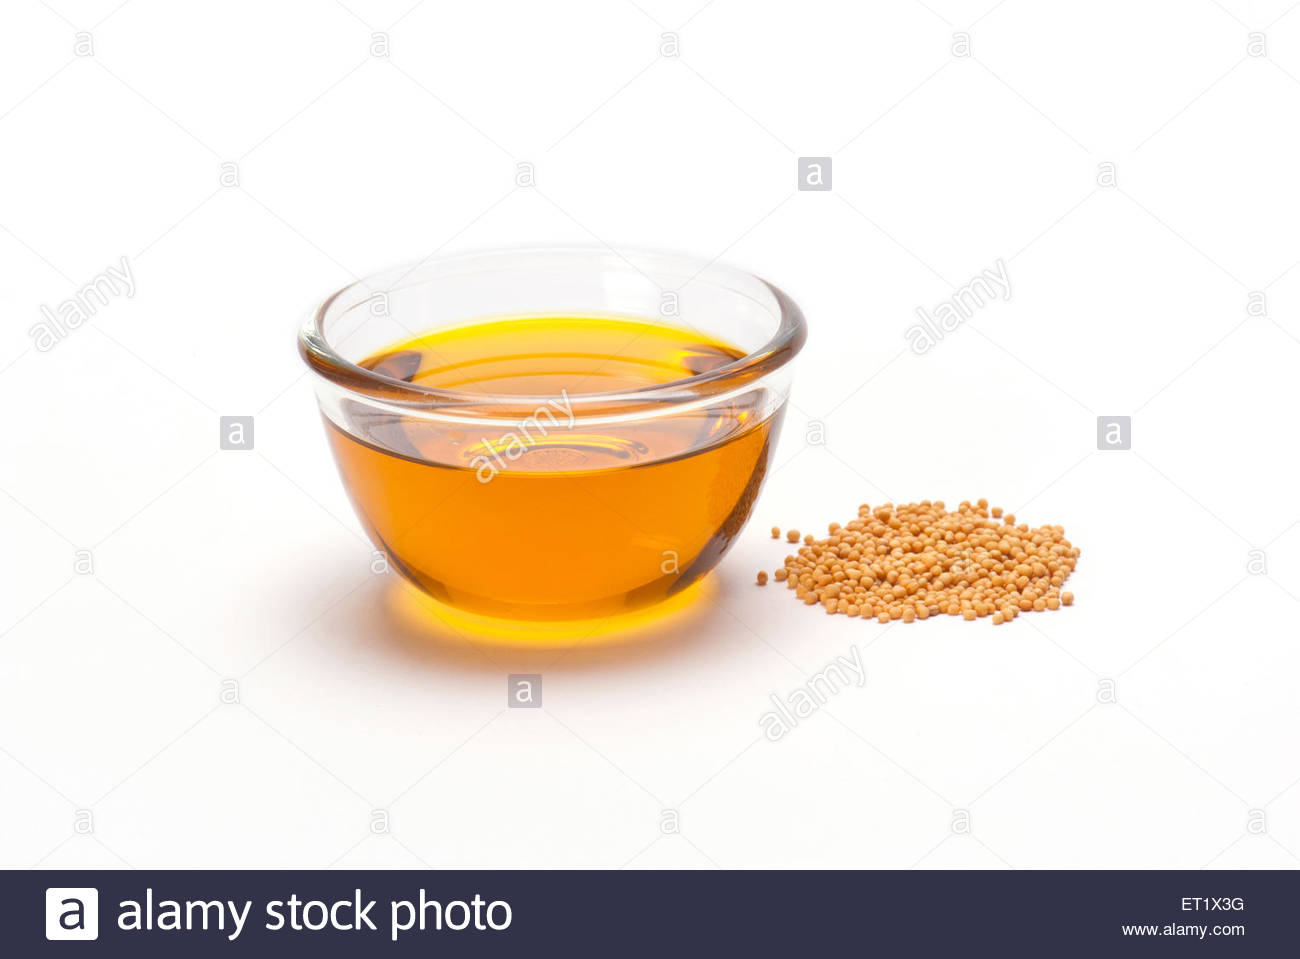 oil in bowl and mustard seeds on white background india